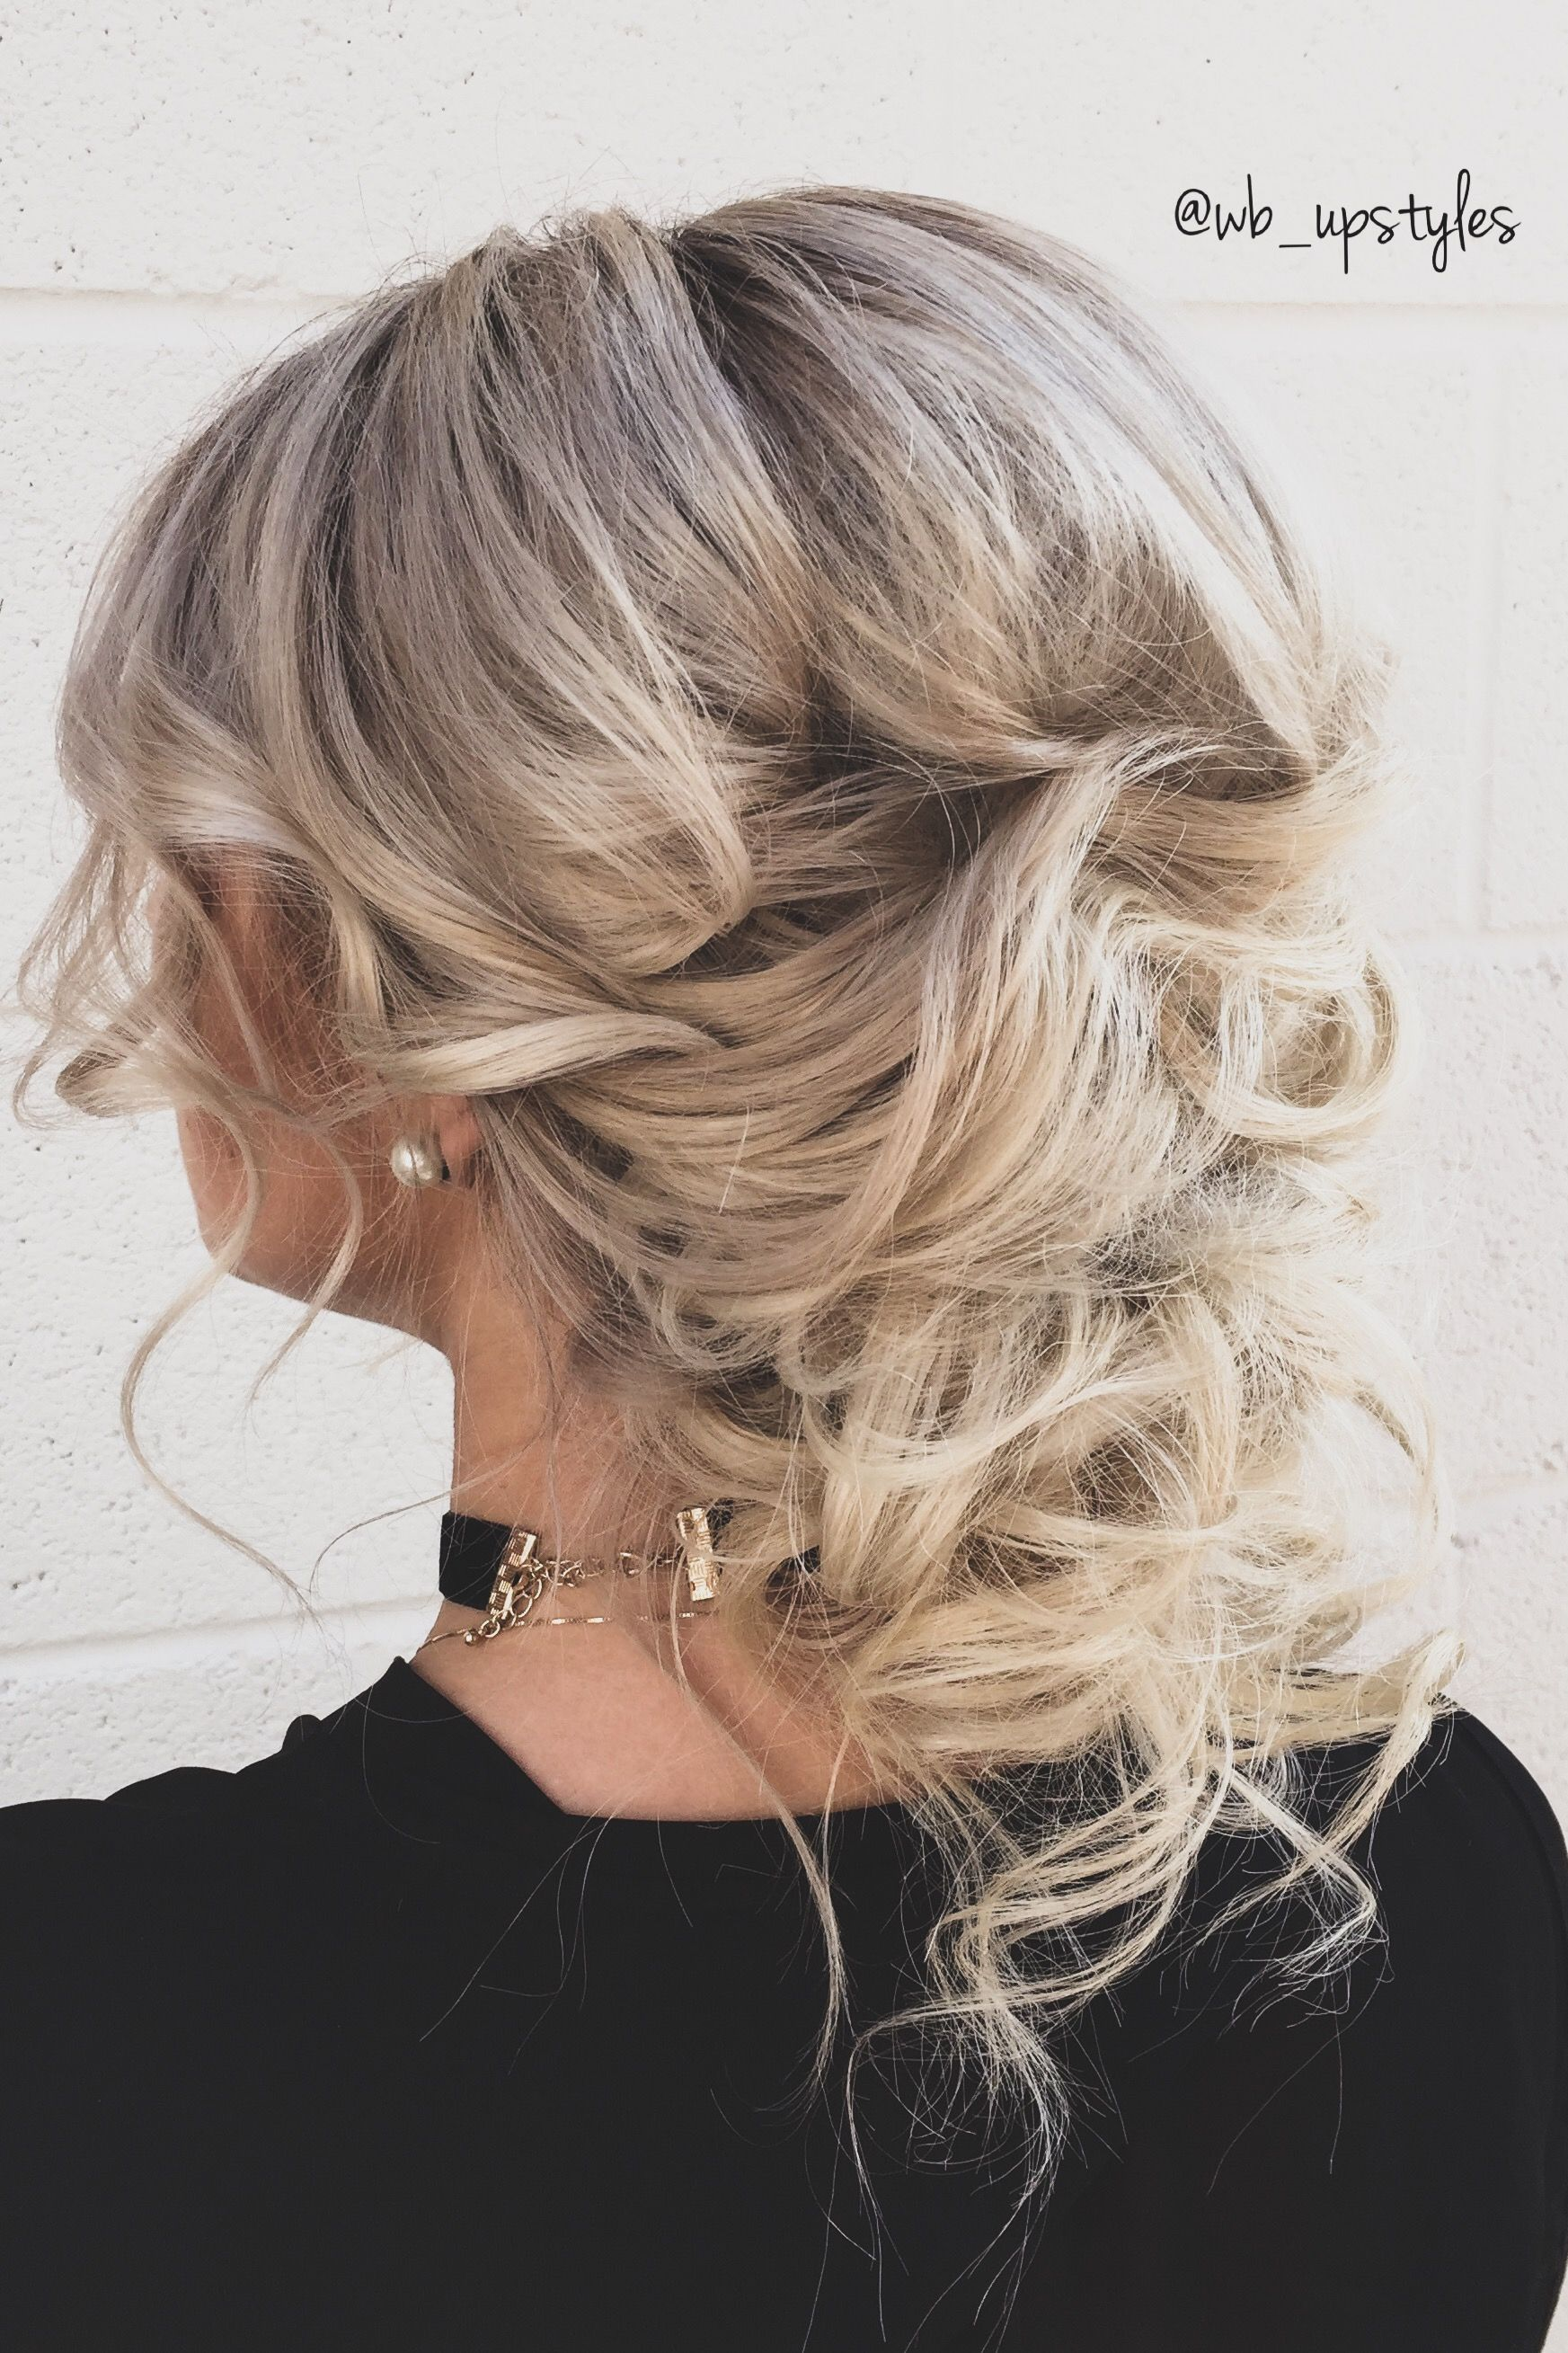 Bridal Hairstyle Low Loose And Chic Wedding Hairstyle Created By Whitney Located At Luxe Salon And Spa In L Wedding Hairstyles Bridal Hair Updo Hair Styles